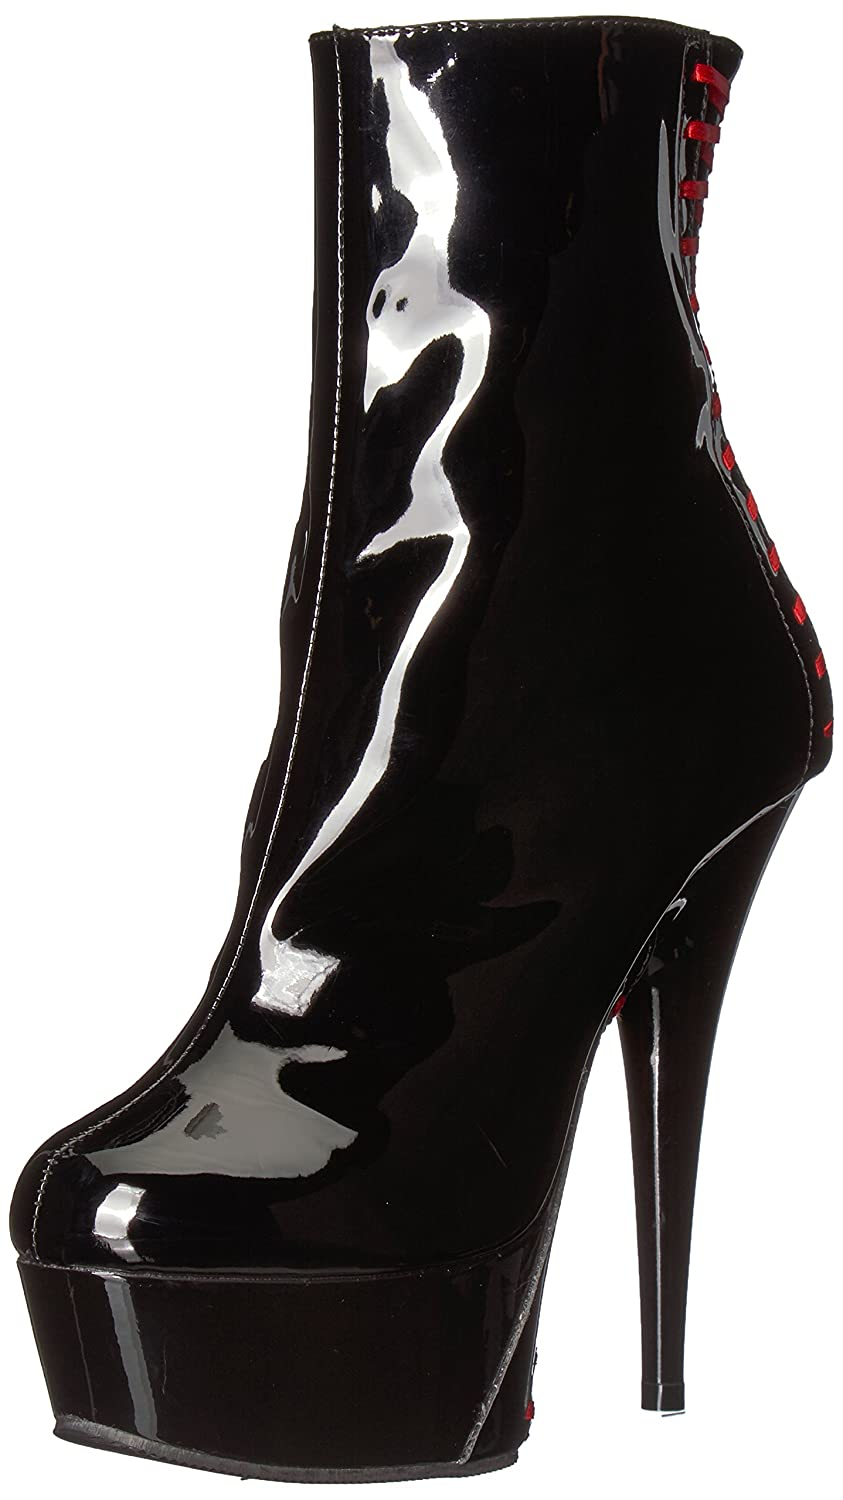 Pleaser Women's Delight-1010 Ankle Boot B06XBLTYXH 11 B(M) US|Black Patent-red/Black